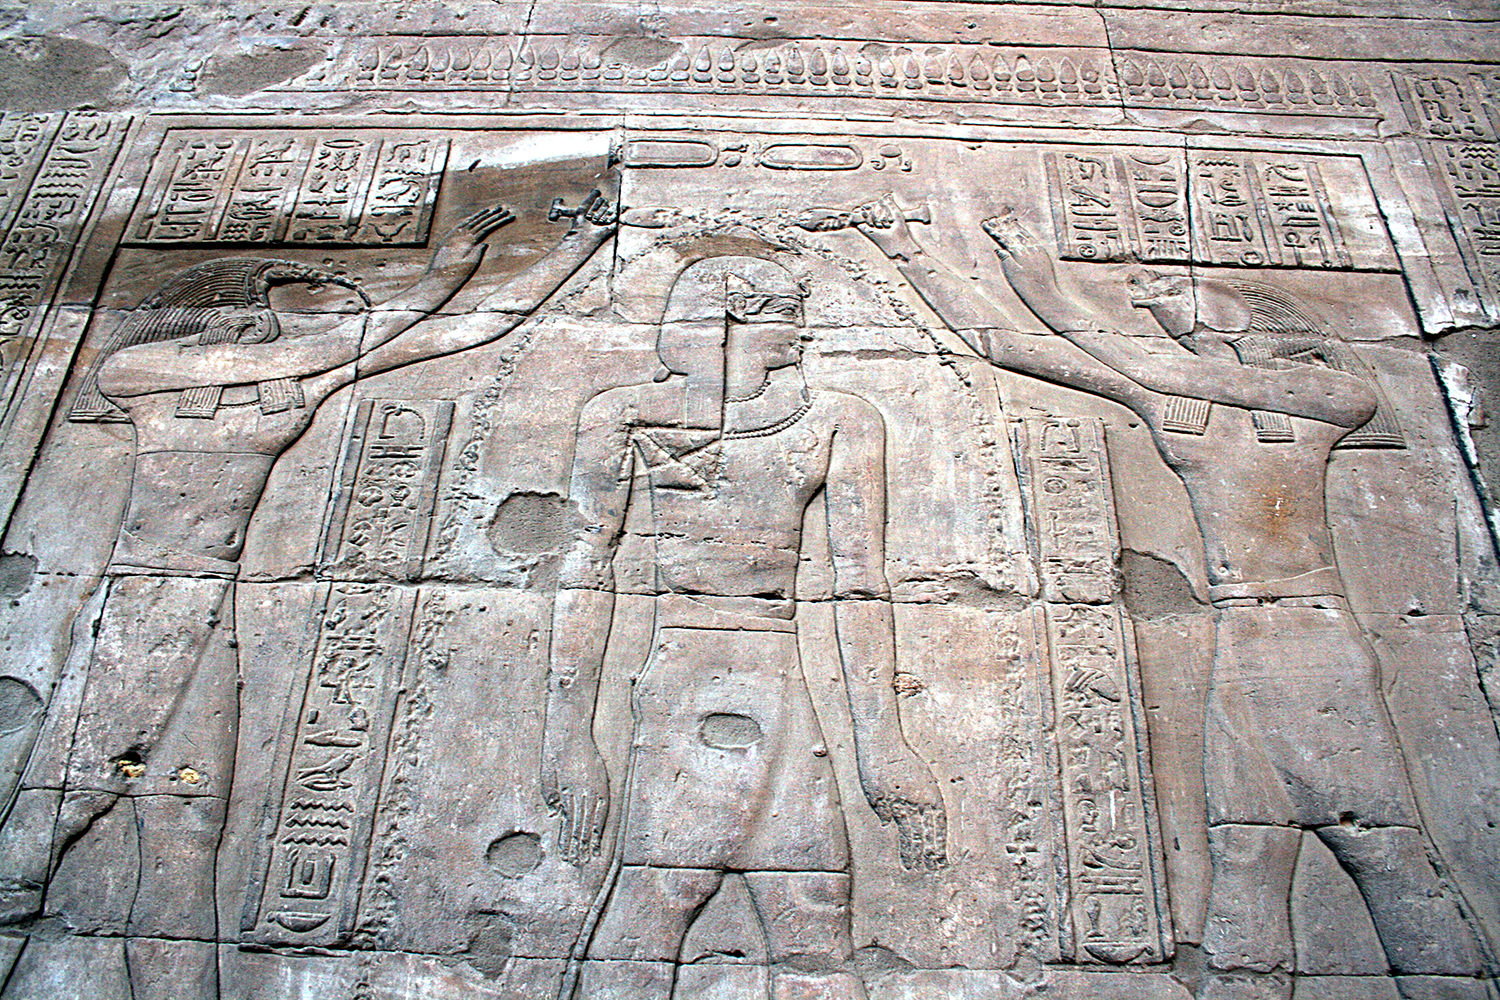 Figure 13: Temple rituals often involved the use of water for libations and purification. An image of one of these religious rites can be seen on the wall of the Temple of Horus at Edfu. Photo courtesy of Hedwig Storch.